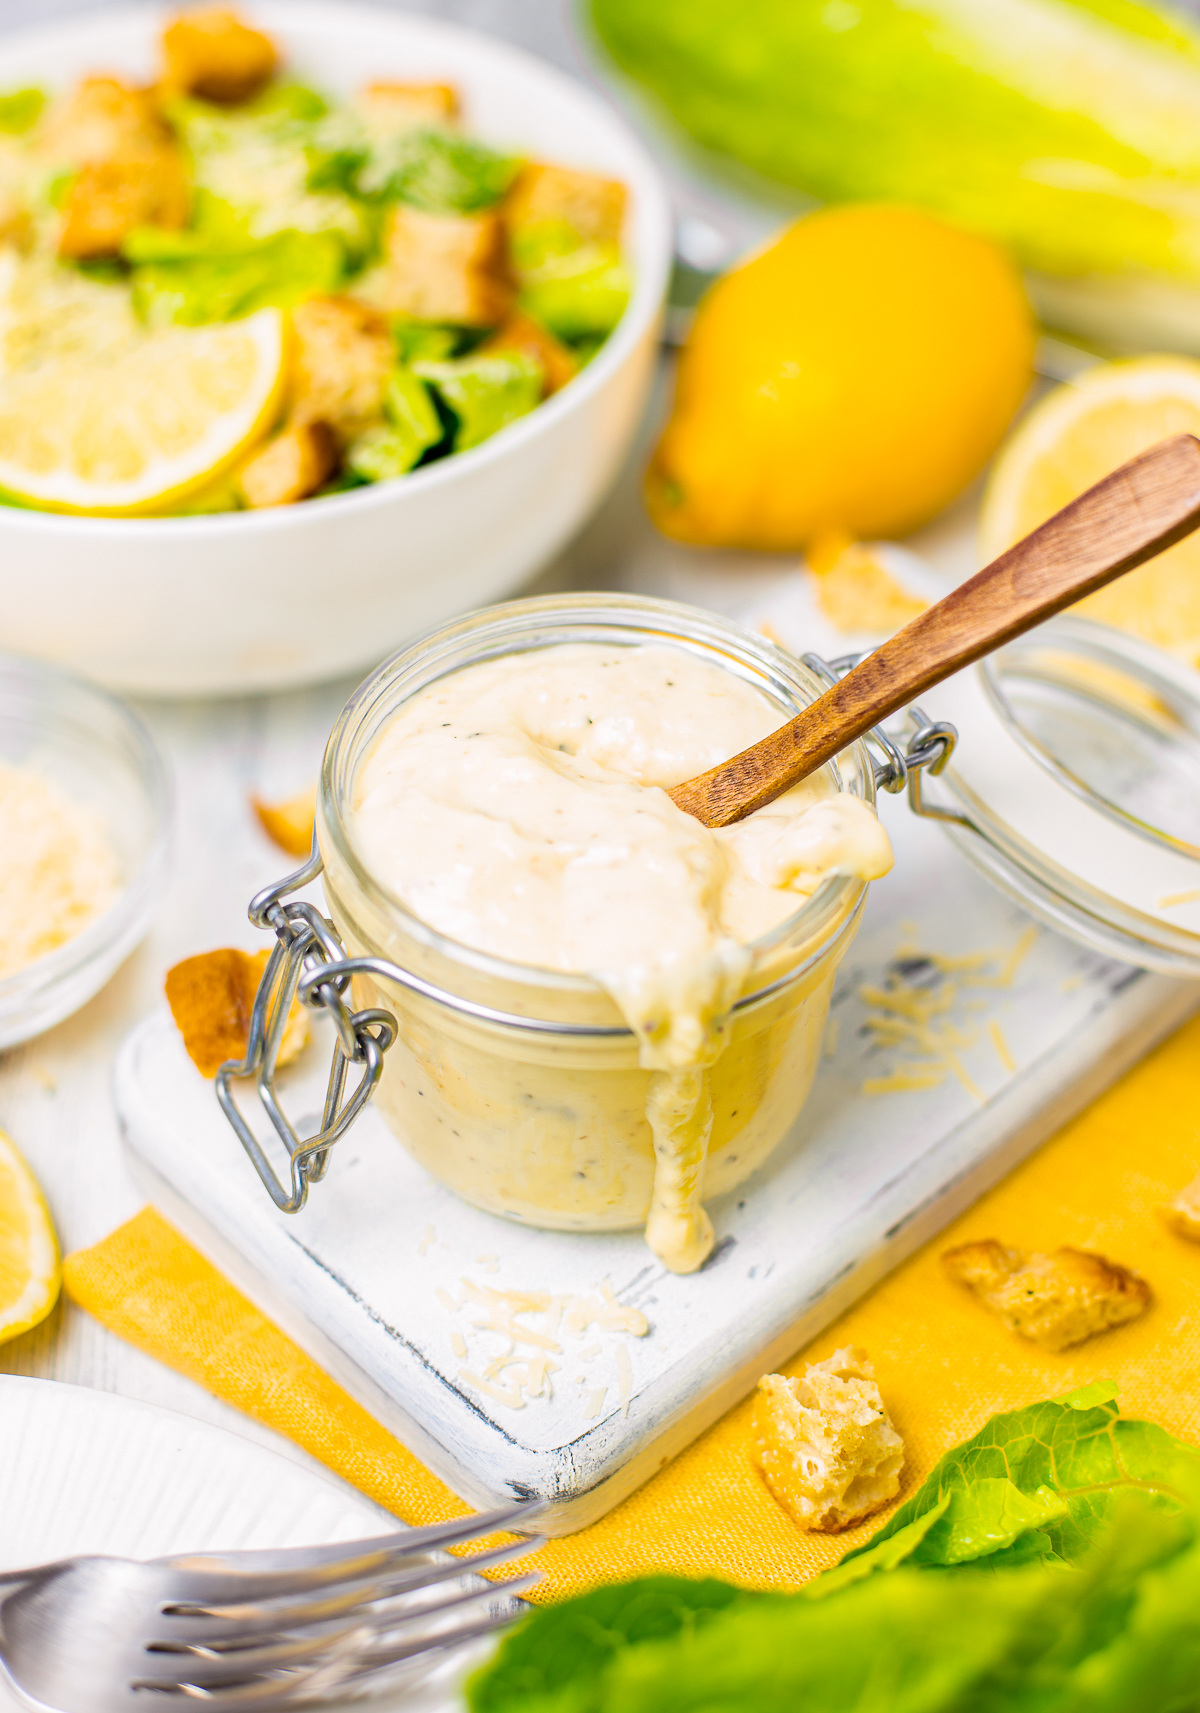 Spoon in Caesar Salad Dressing with it dripping down side of jar.